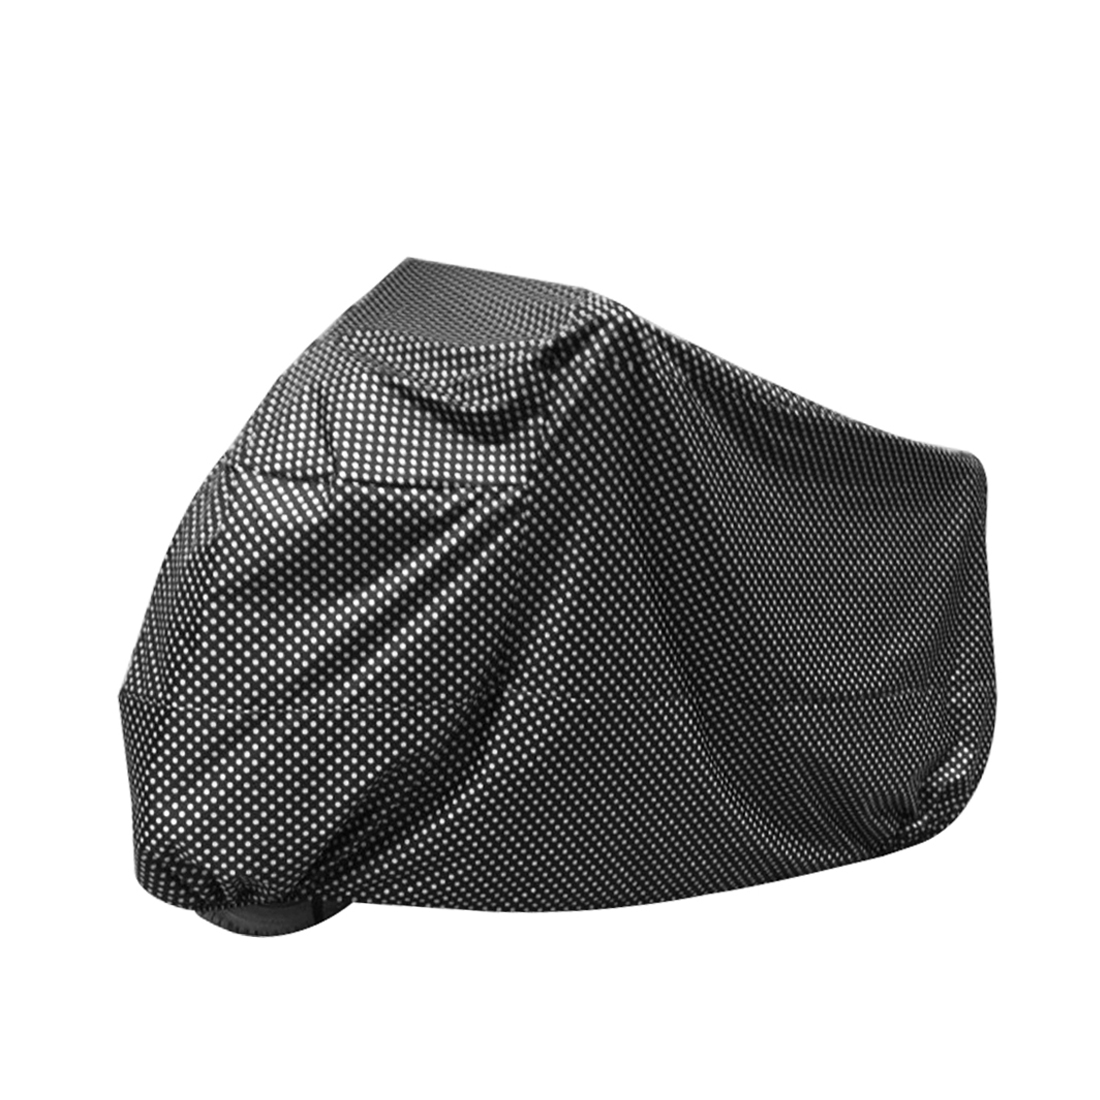 XXL 180T Rain Dust Motorcycle Cover Black Dotted Outdoor Waterproof UV Protector